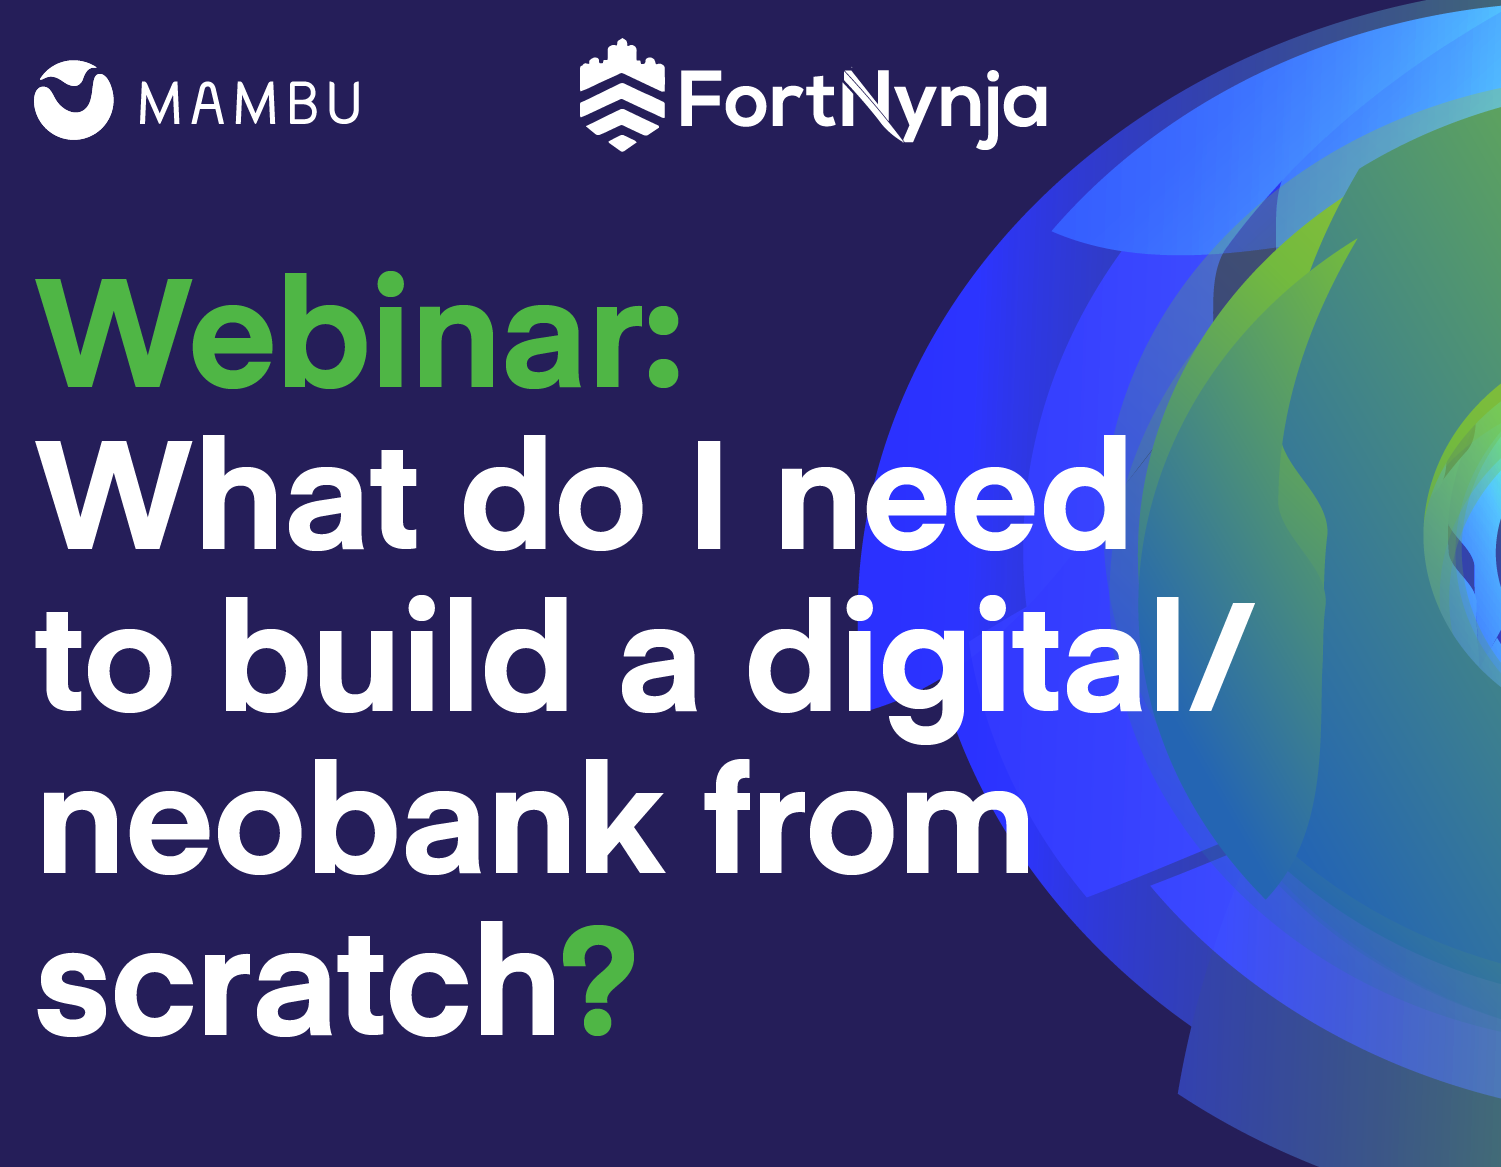 Webinar: What do I need to build a digital/neobank from scratch?